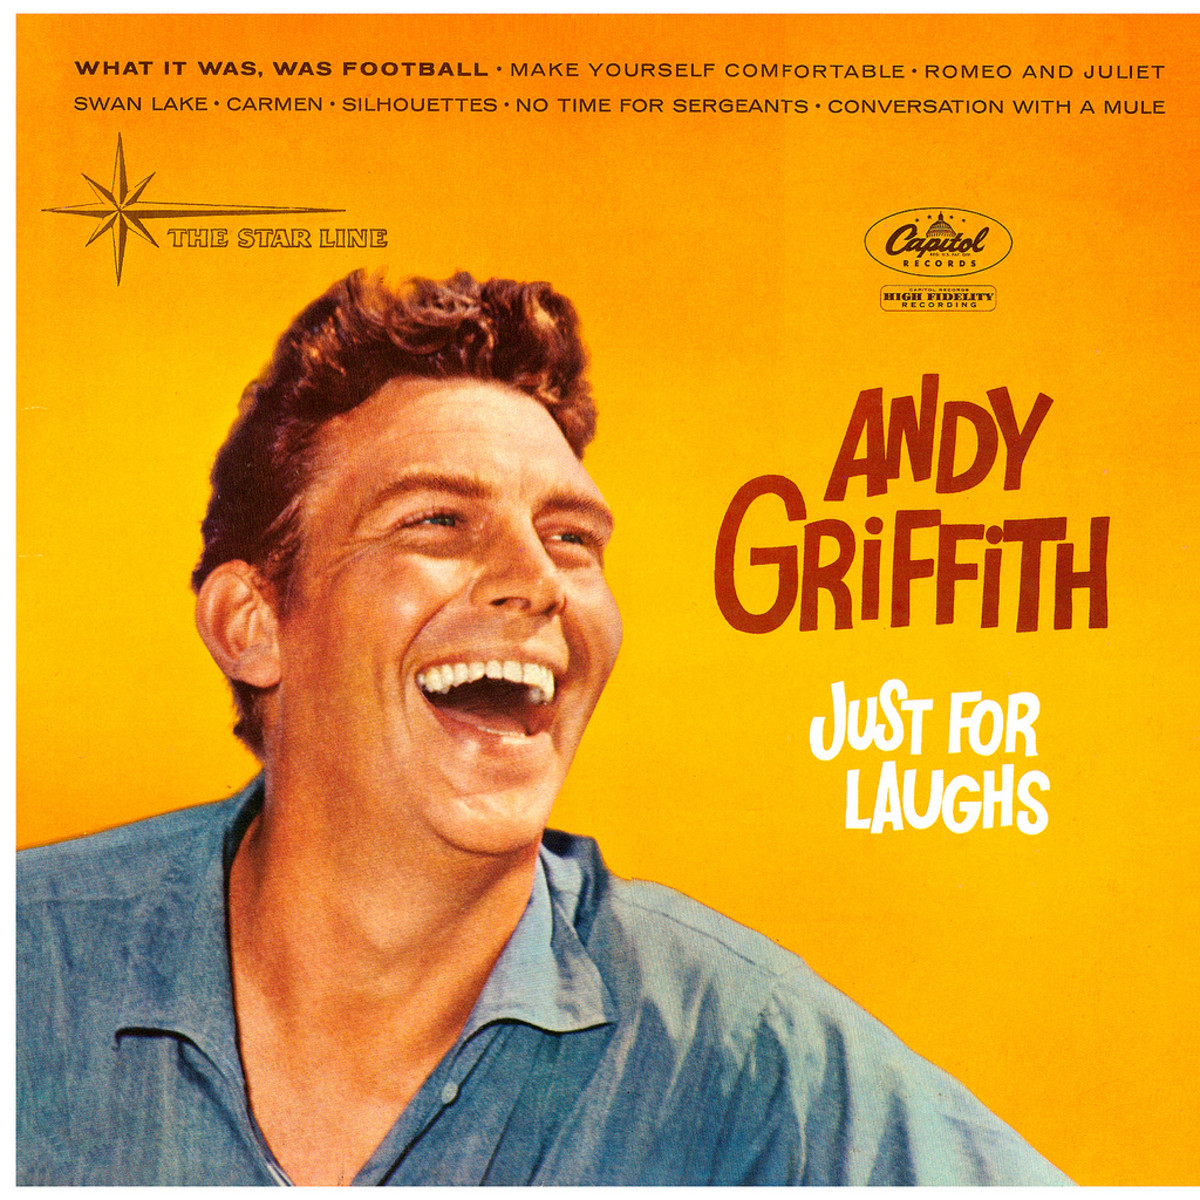 THE RECORD ALBUM THAT PROPELLED ANDY GRIFFITH TO STARDOM